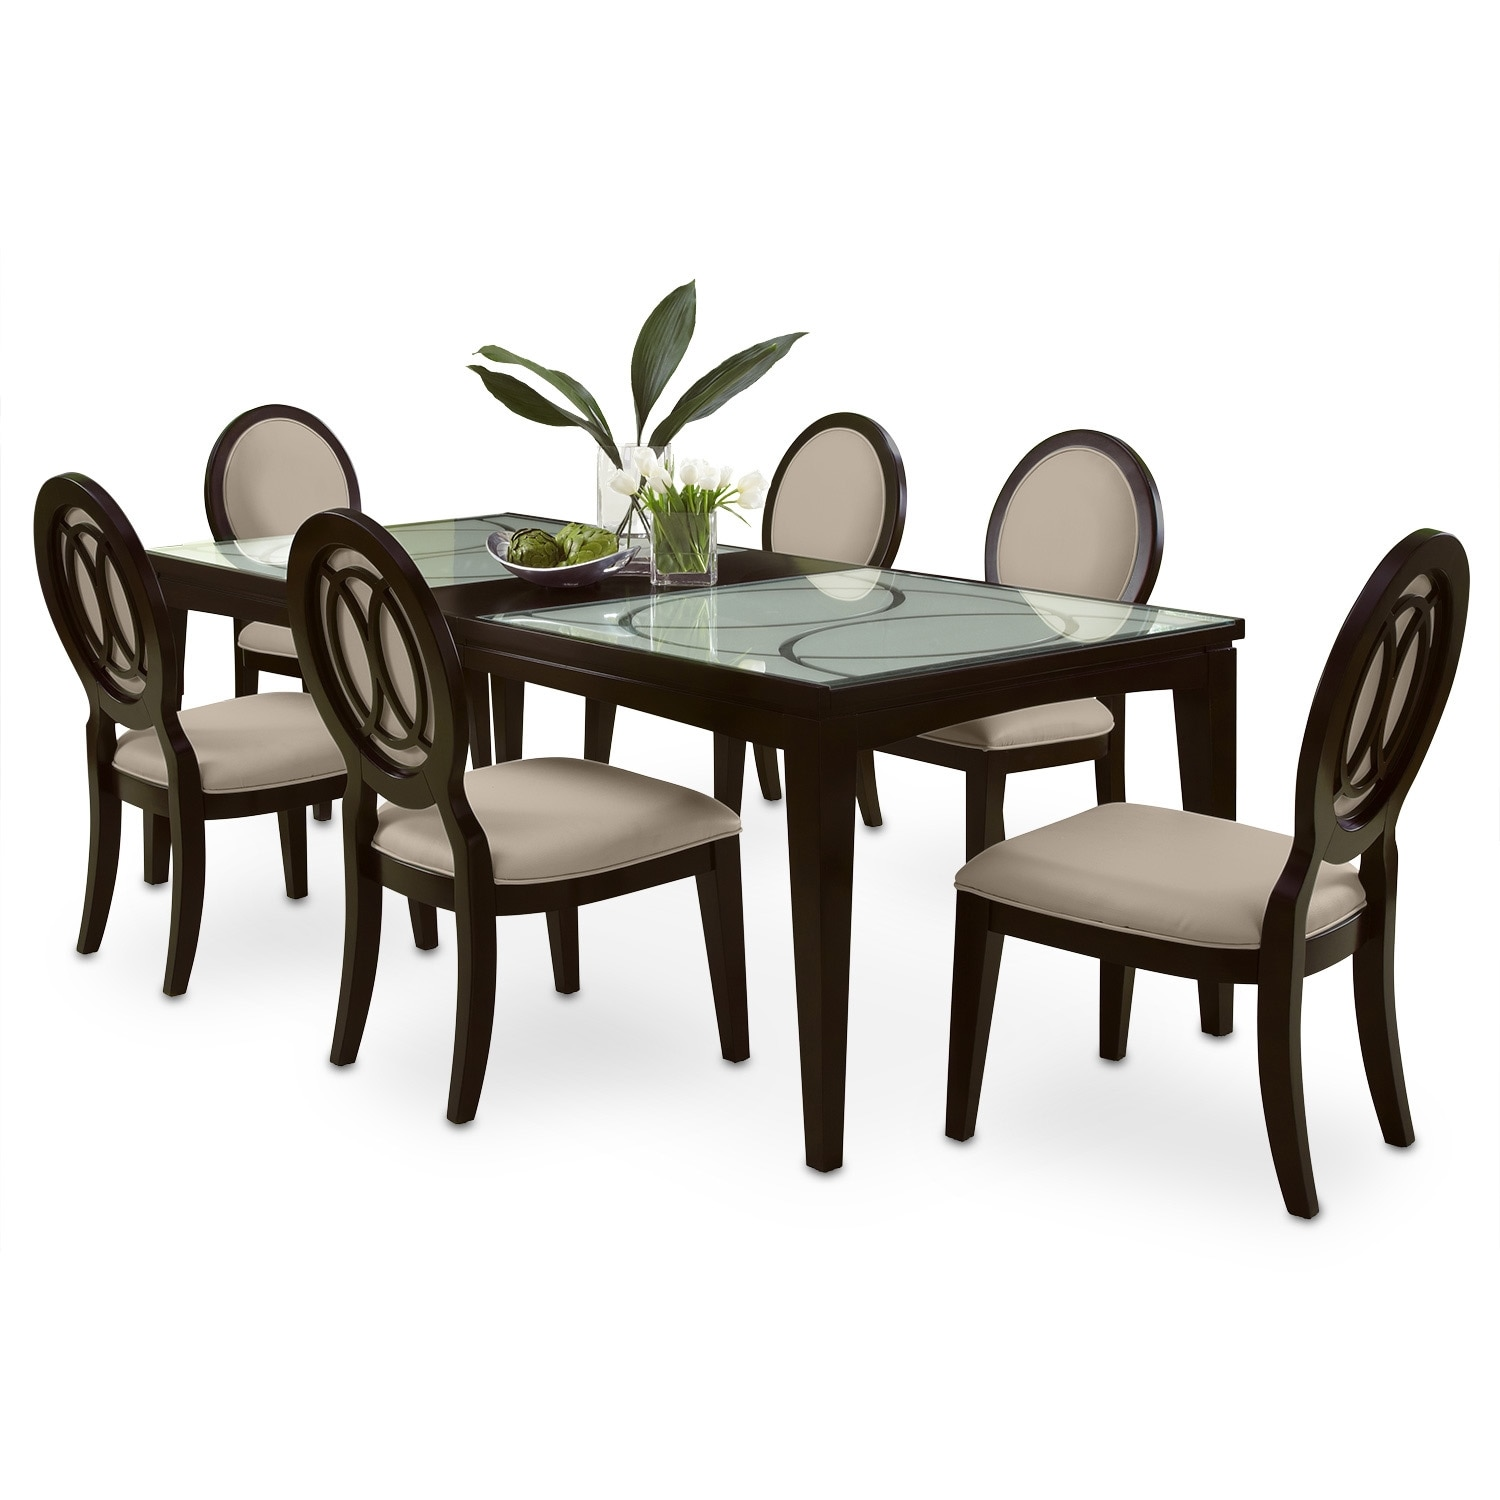 American Signature Dining Room Furniture Click to change image